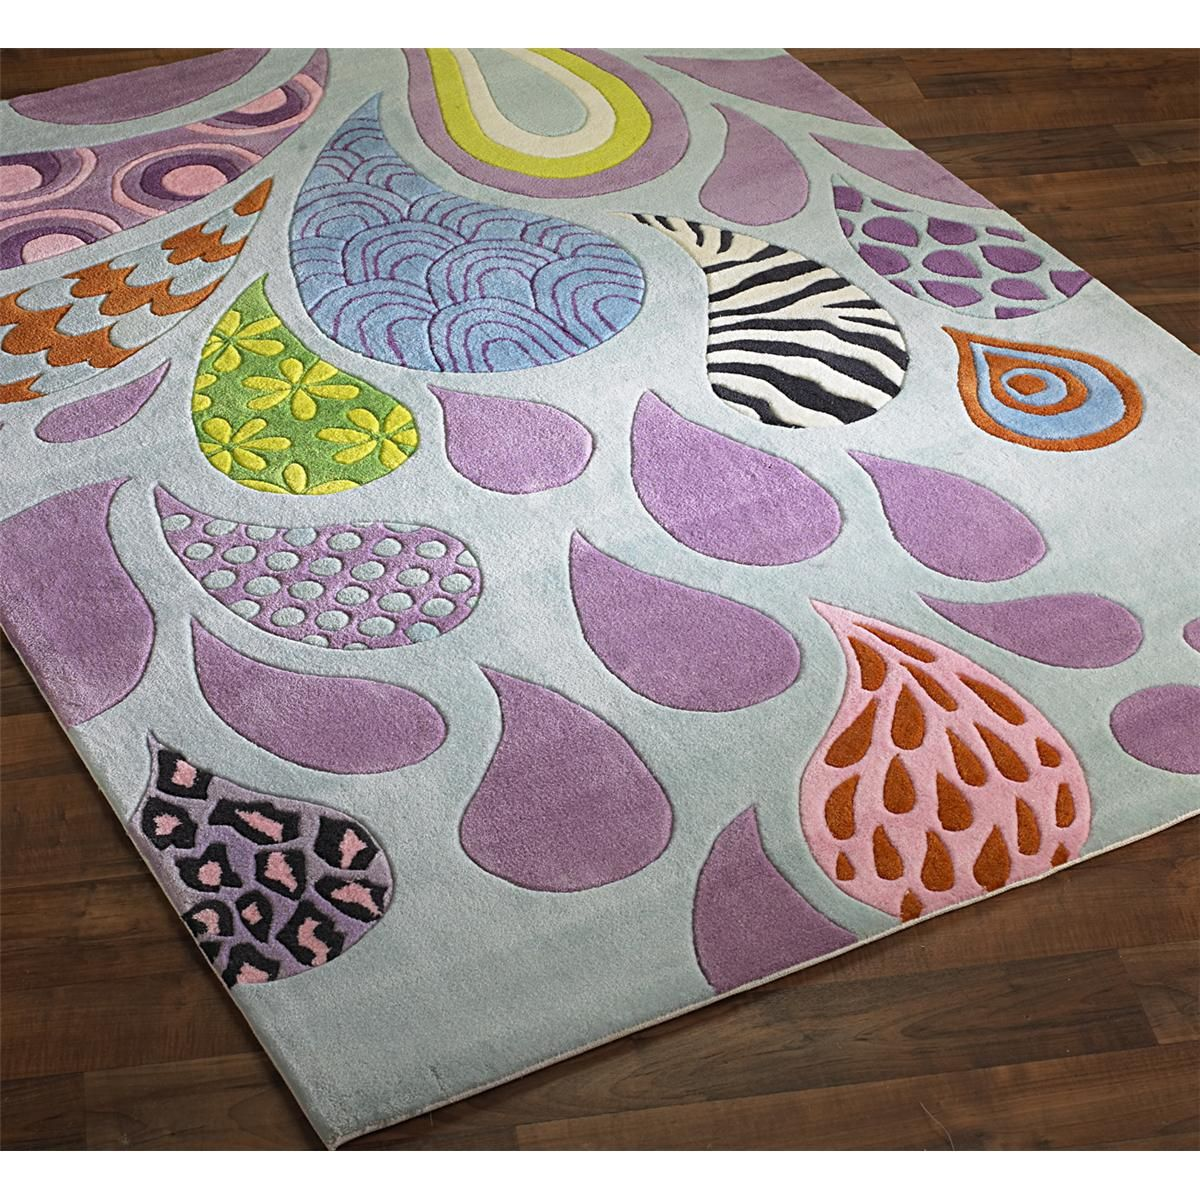 Girly Rugs For Bedroom: Teen Girl Hipster Rug Fun For Teens, This Whimsical